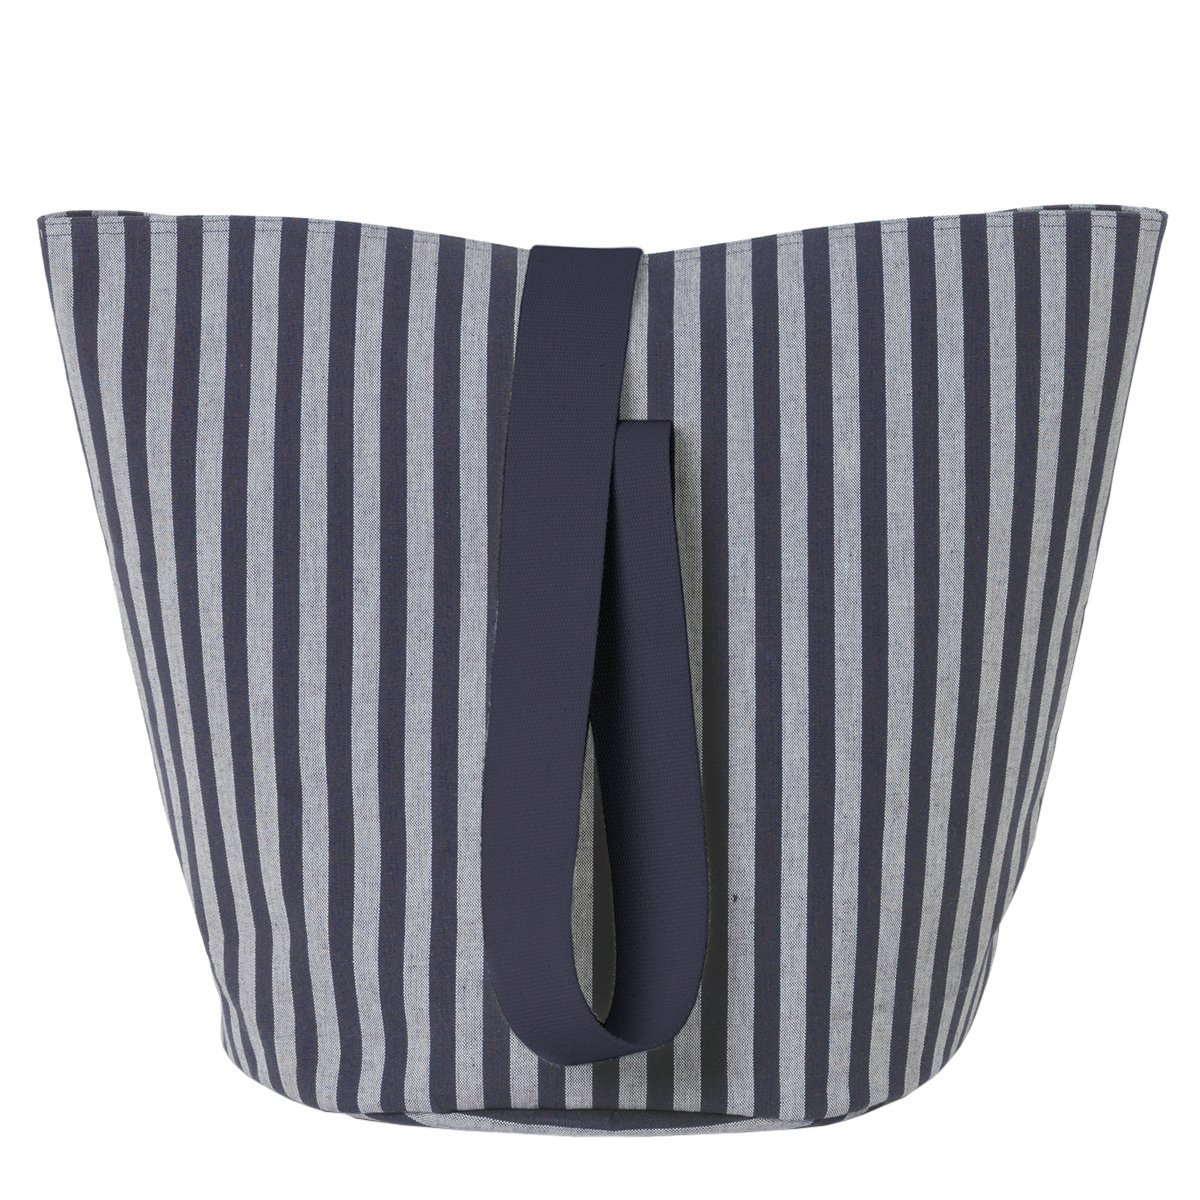 Ferm Living Chambray Basket - Stripes - Medium